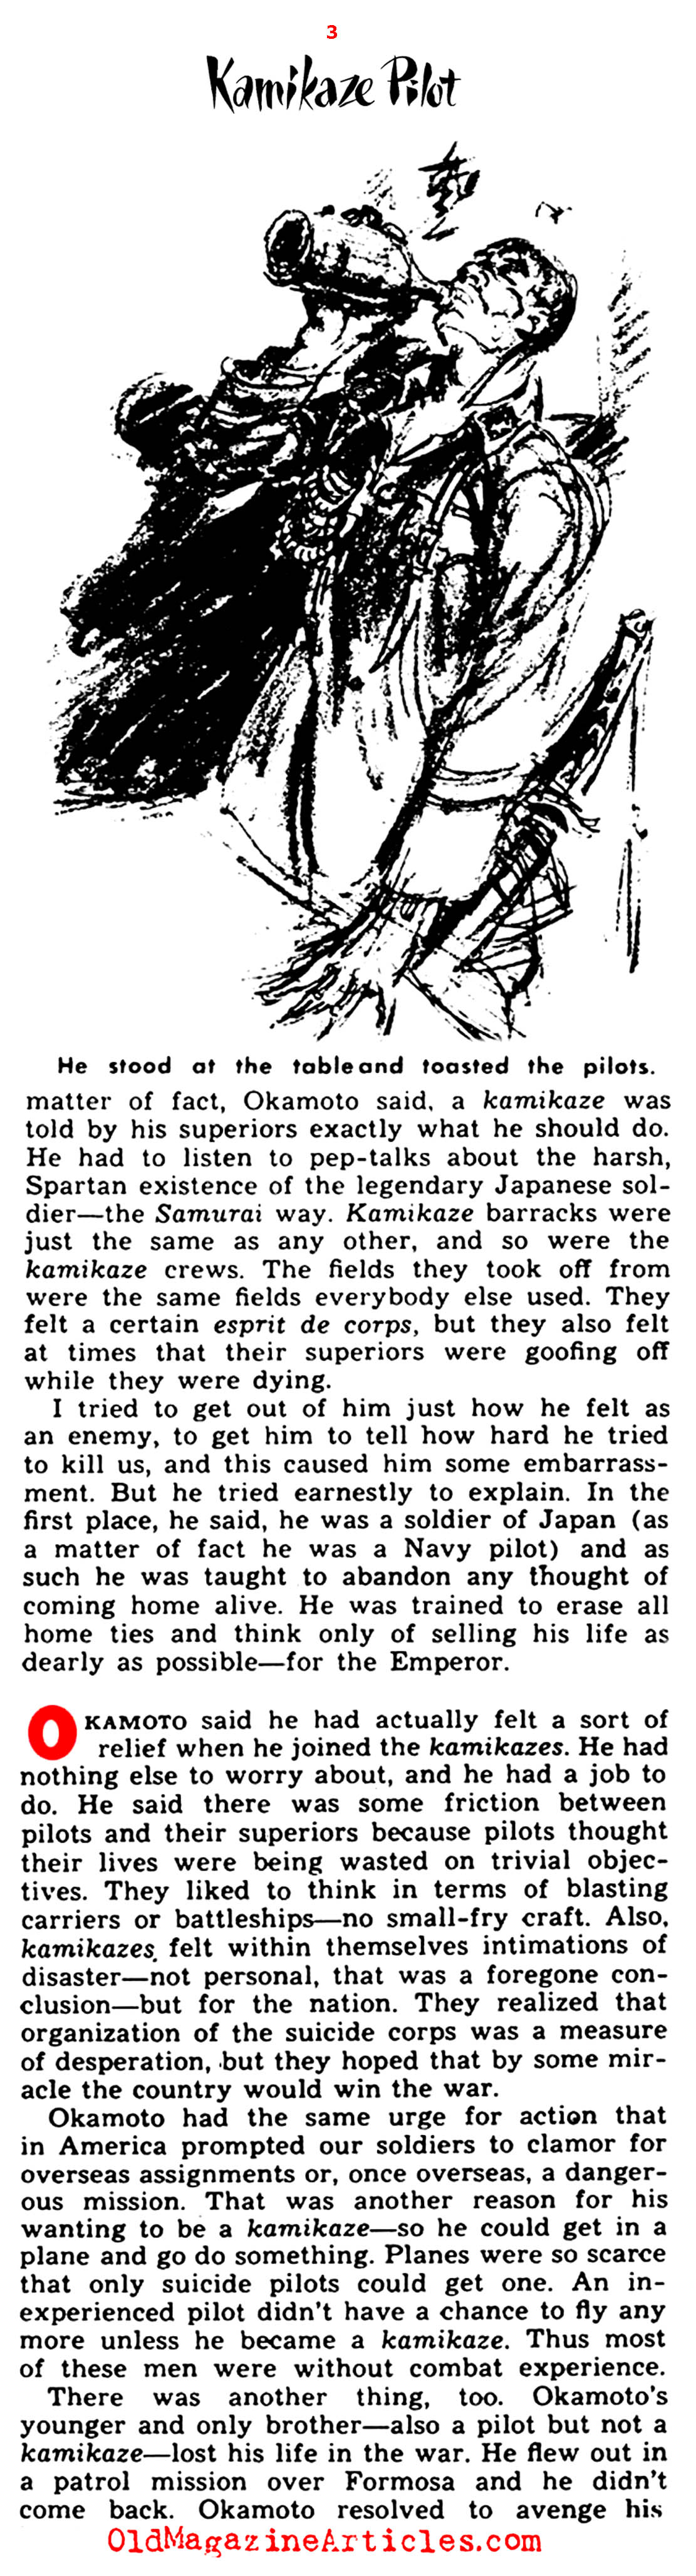 An Interview with a Kamikaze Pilot  (Yank Magazine, 1945)